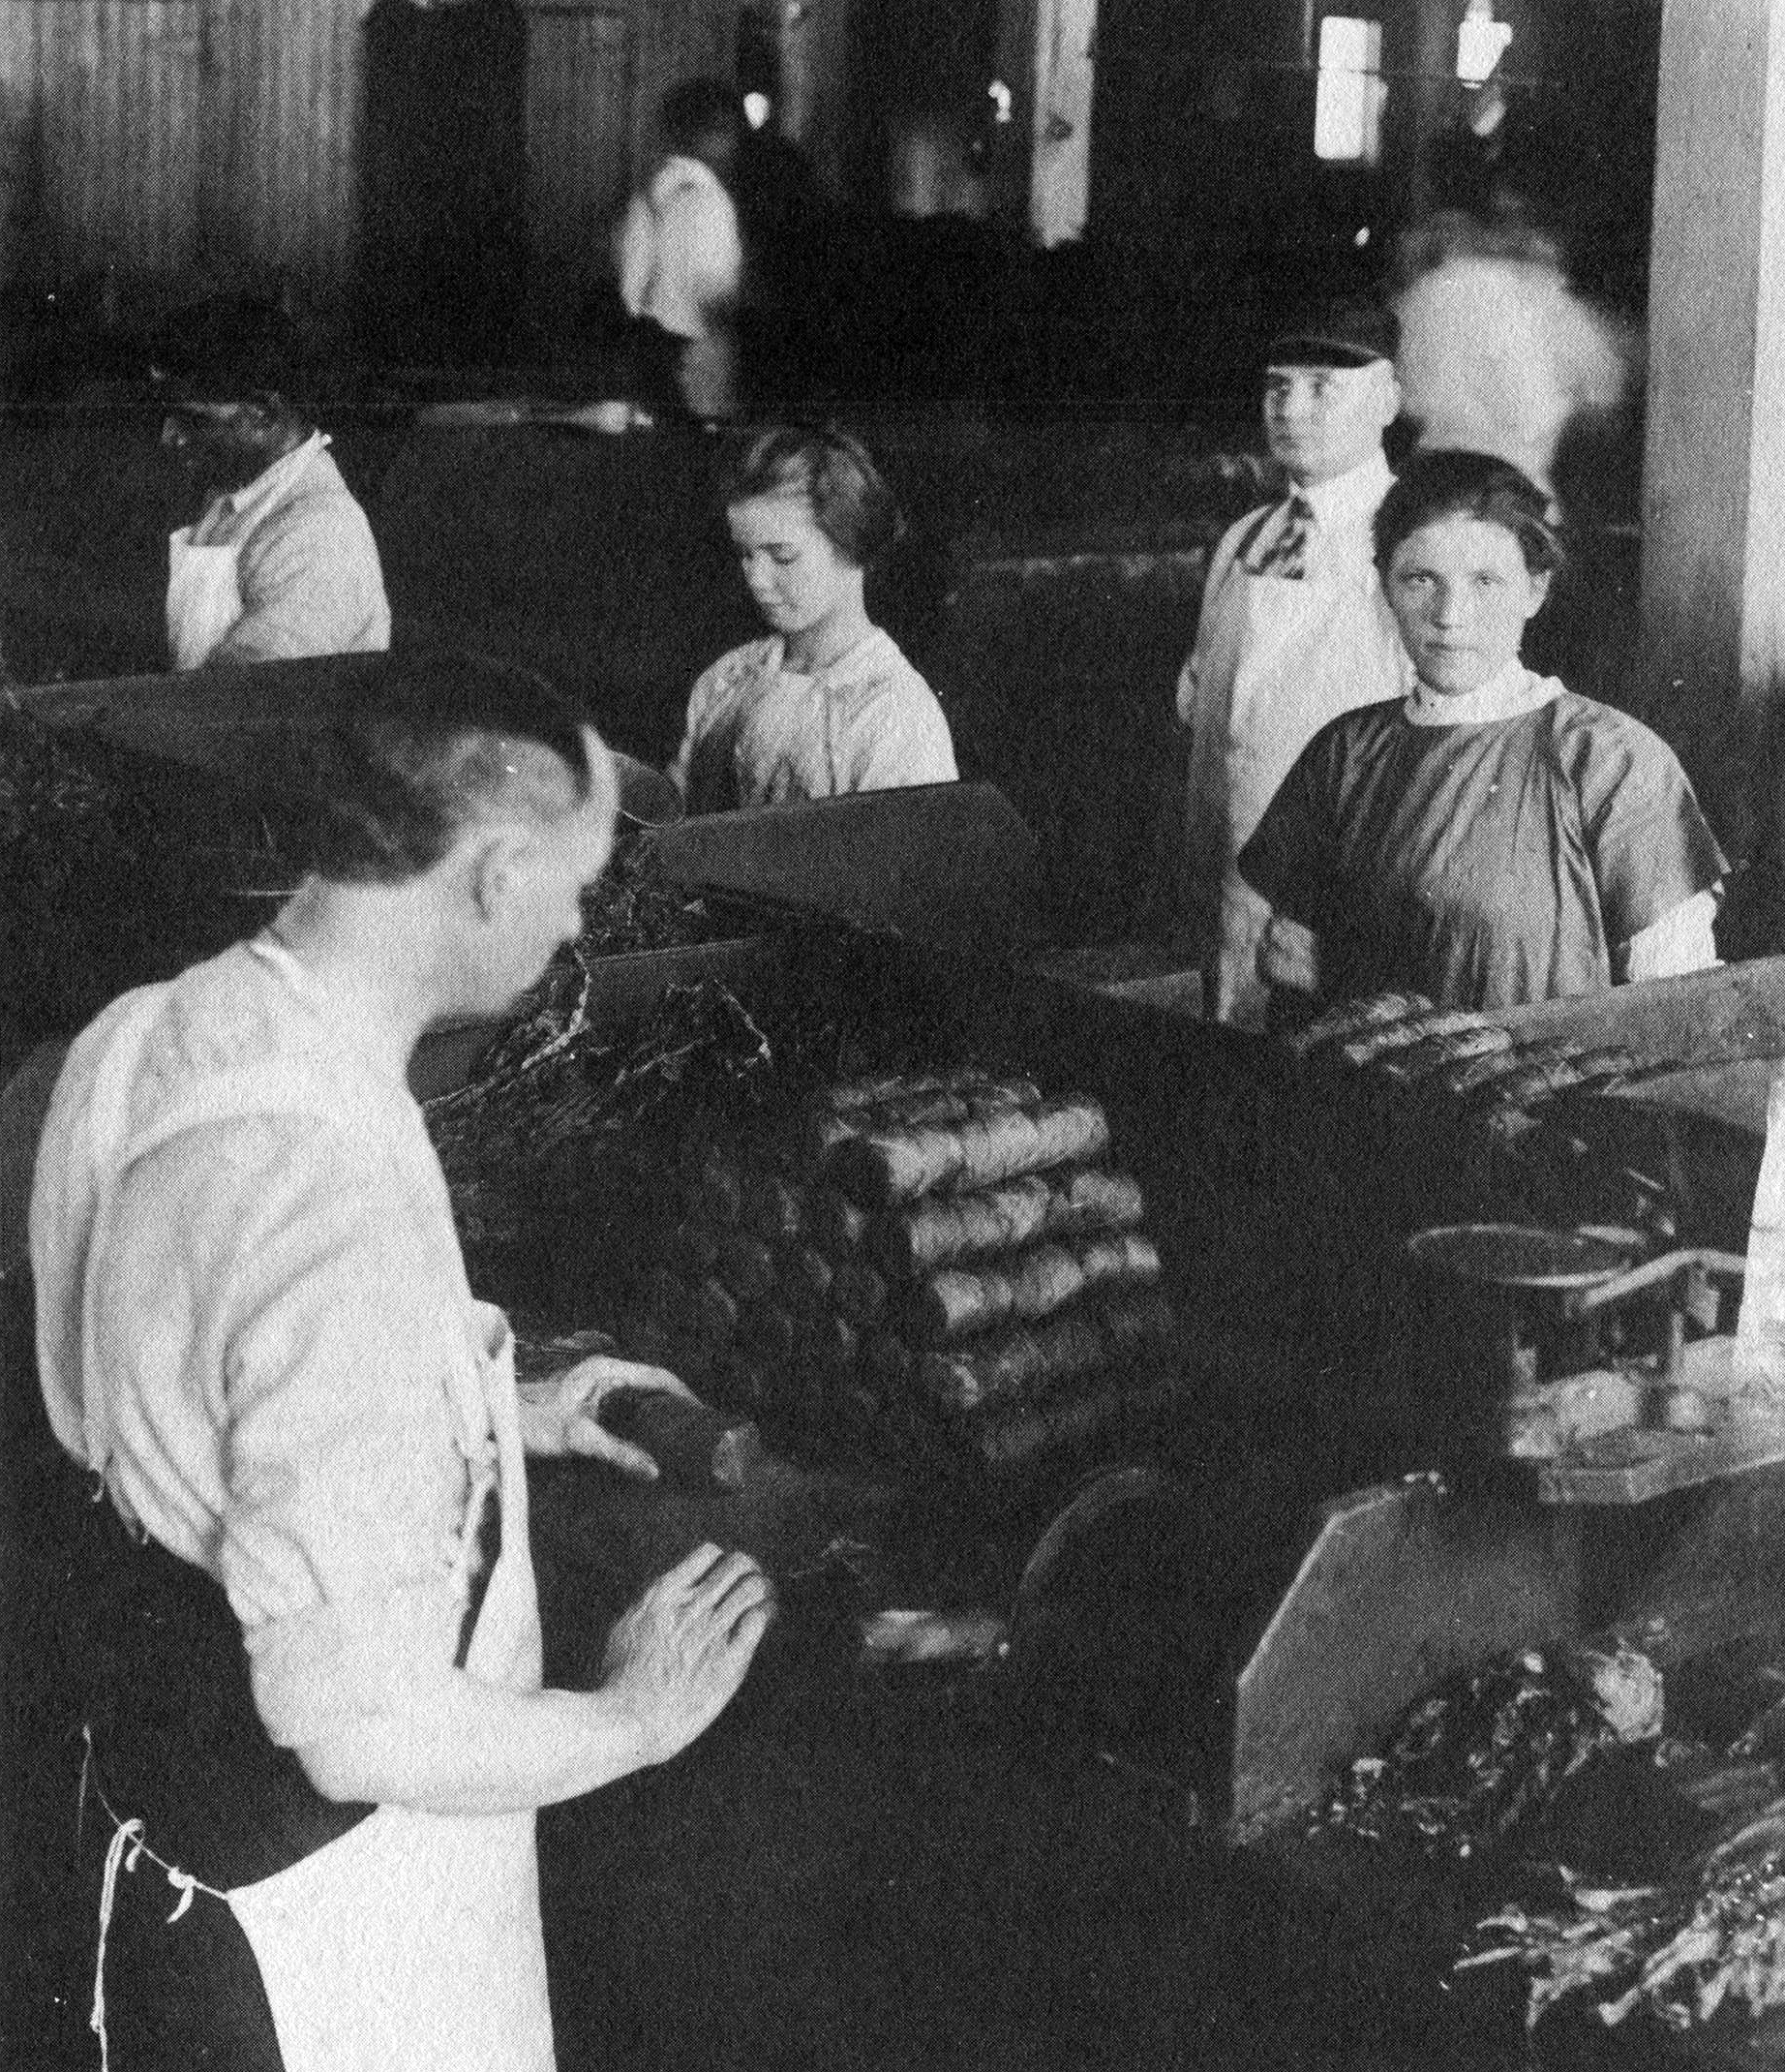 Young women and children working on the shop floor of Tuckett and Billings Tobacco Manufactory. The women are dressed in 19th century uniforms, with many wearing white work aprons. Rolls of tobacco sit in front of them and one young woman looks directly at the camera.